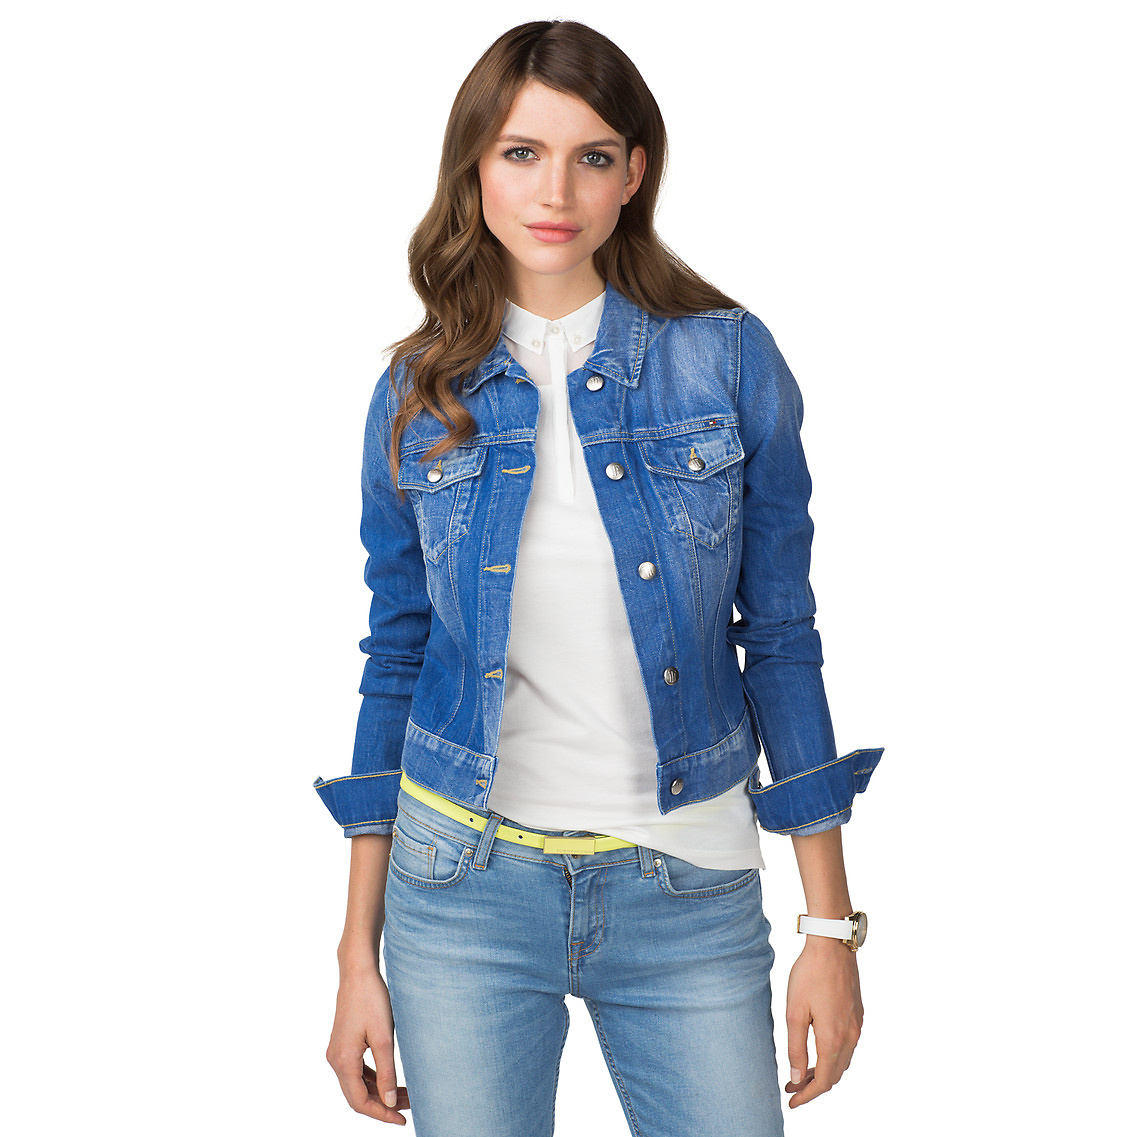 Tommy hilfiger Vienna Denim Jacket in Blue (shiloh) | Lyst